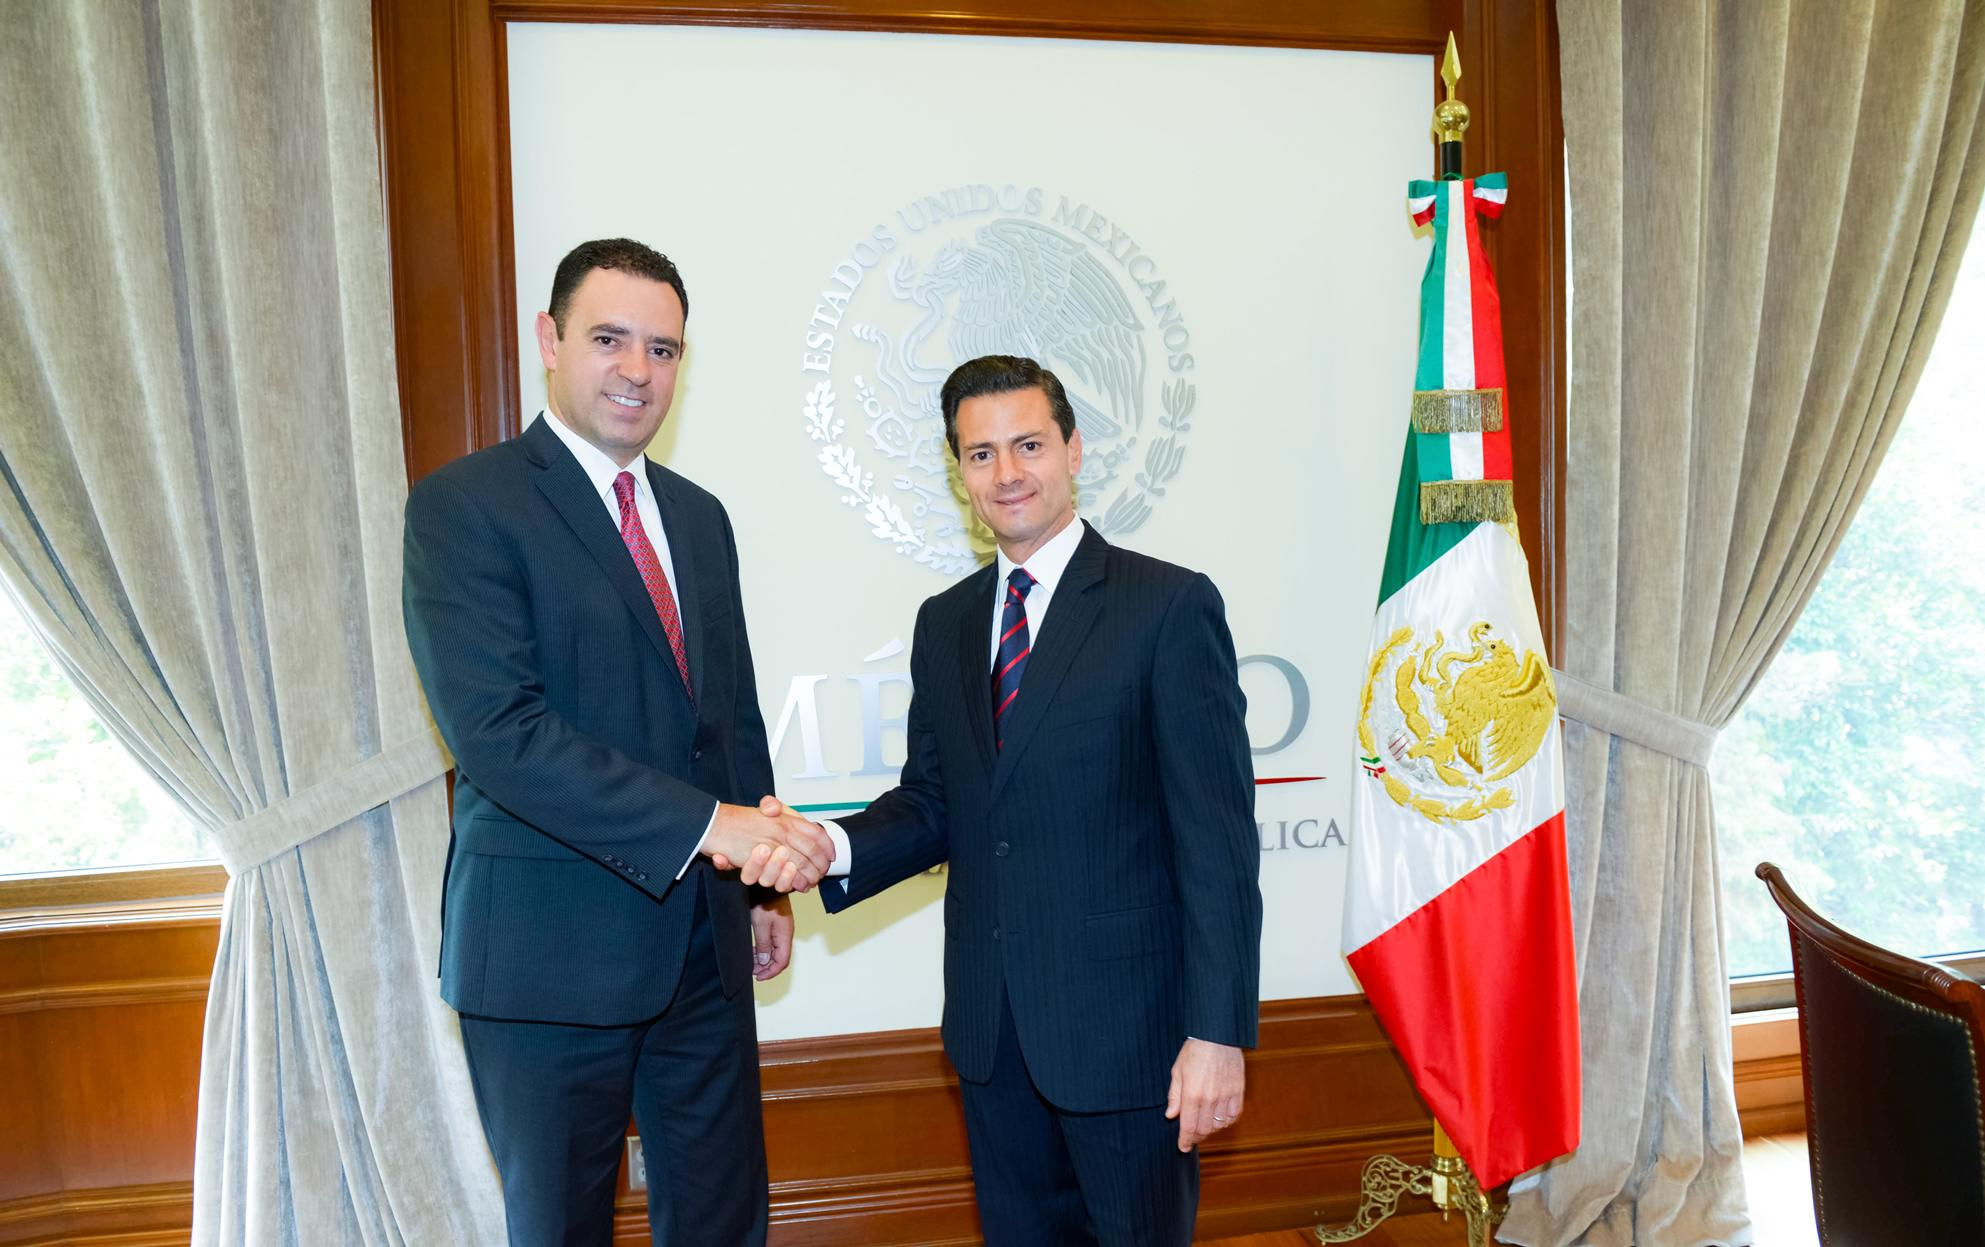 The president congratulated the governor on his victory in the June 5 elections, and confirmed the government's willingness to help his administration undertake the programs and actions that have been planned.